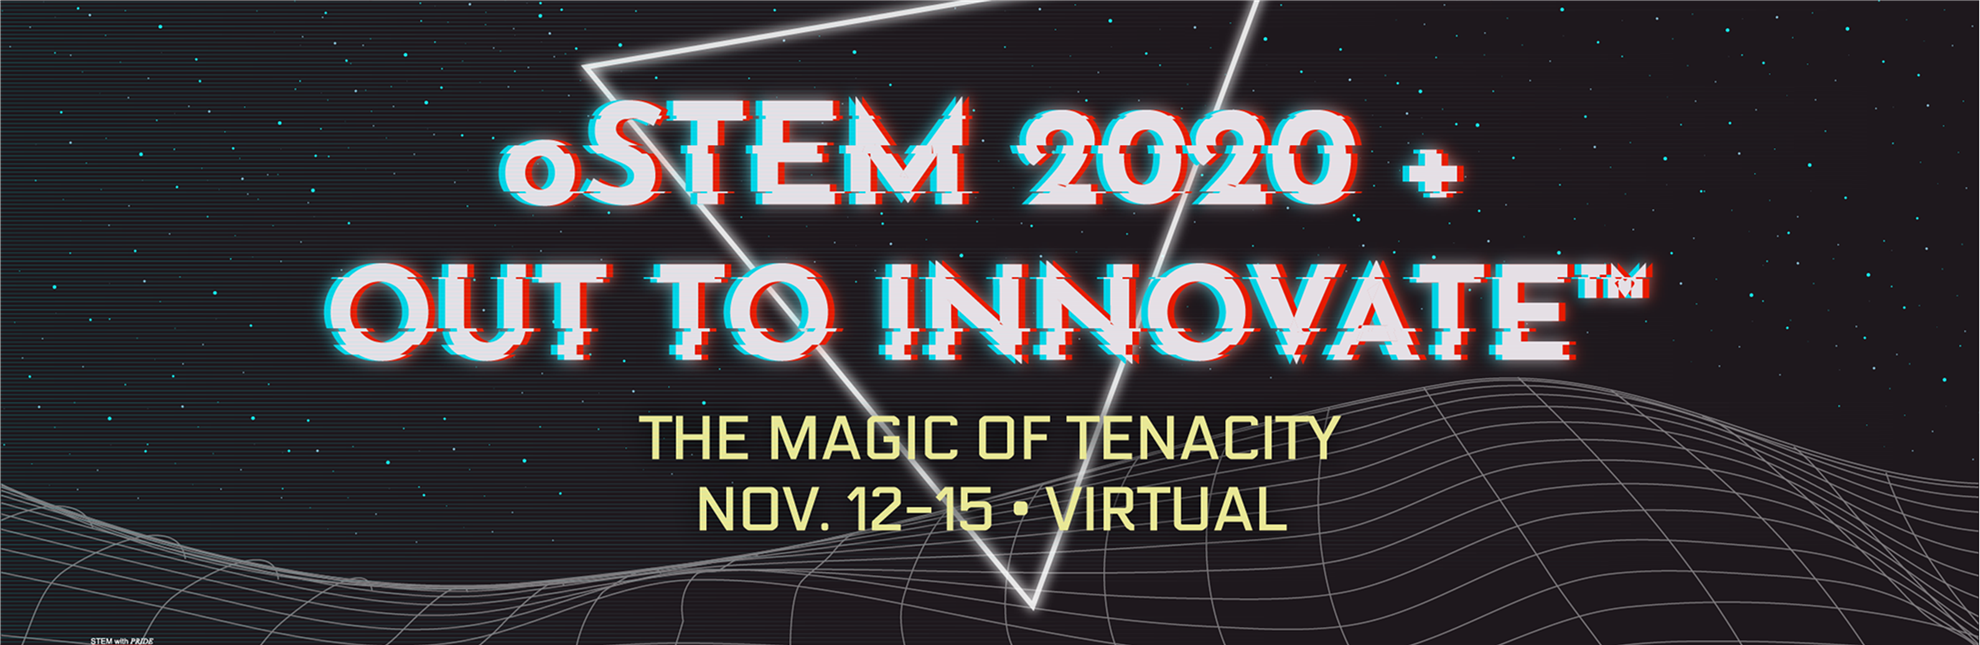 oSTEM 2020 + Out to Innovate(tm) -- The Magic of Tenacity, November 12-15--Virtual Conference Registration